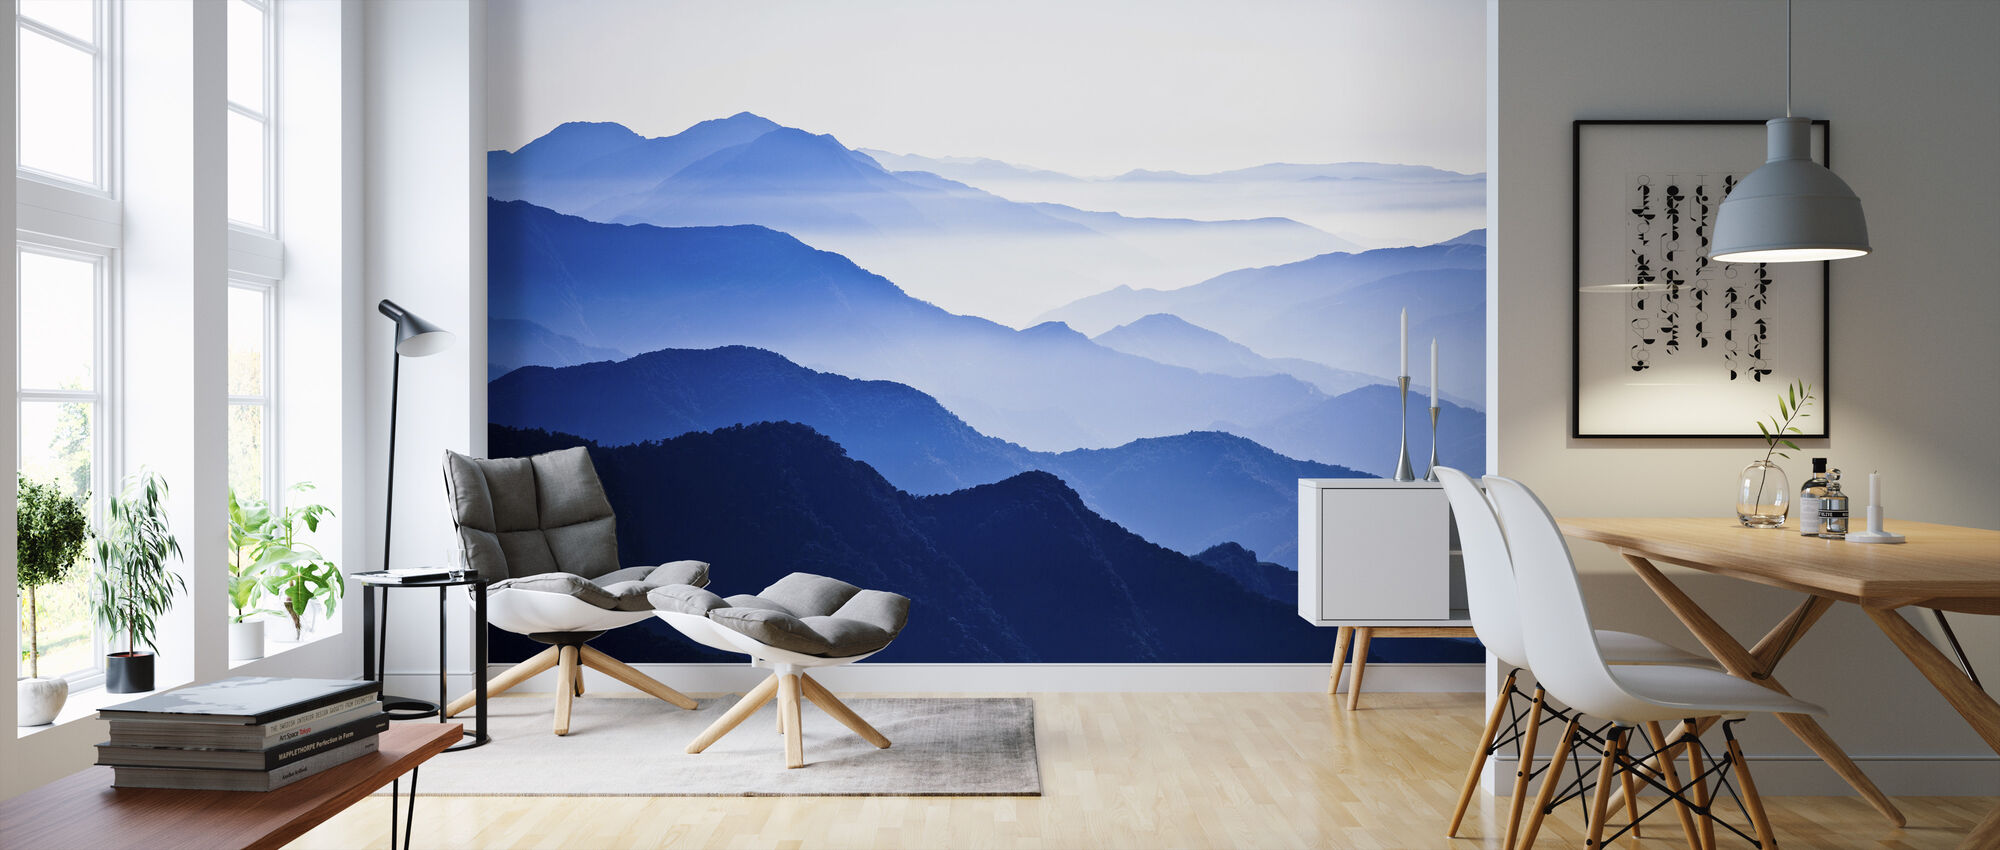 Endlessly Rising Peaks of Mountains - Wallpaper - Living Room